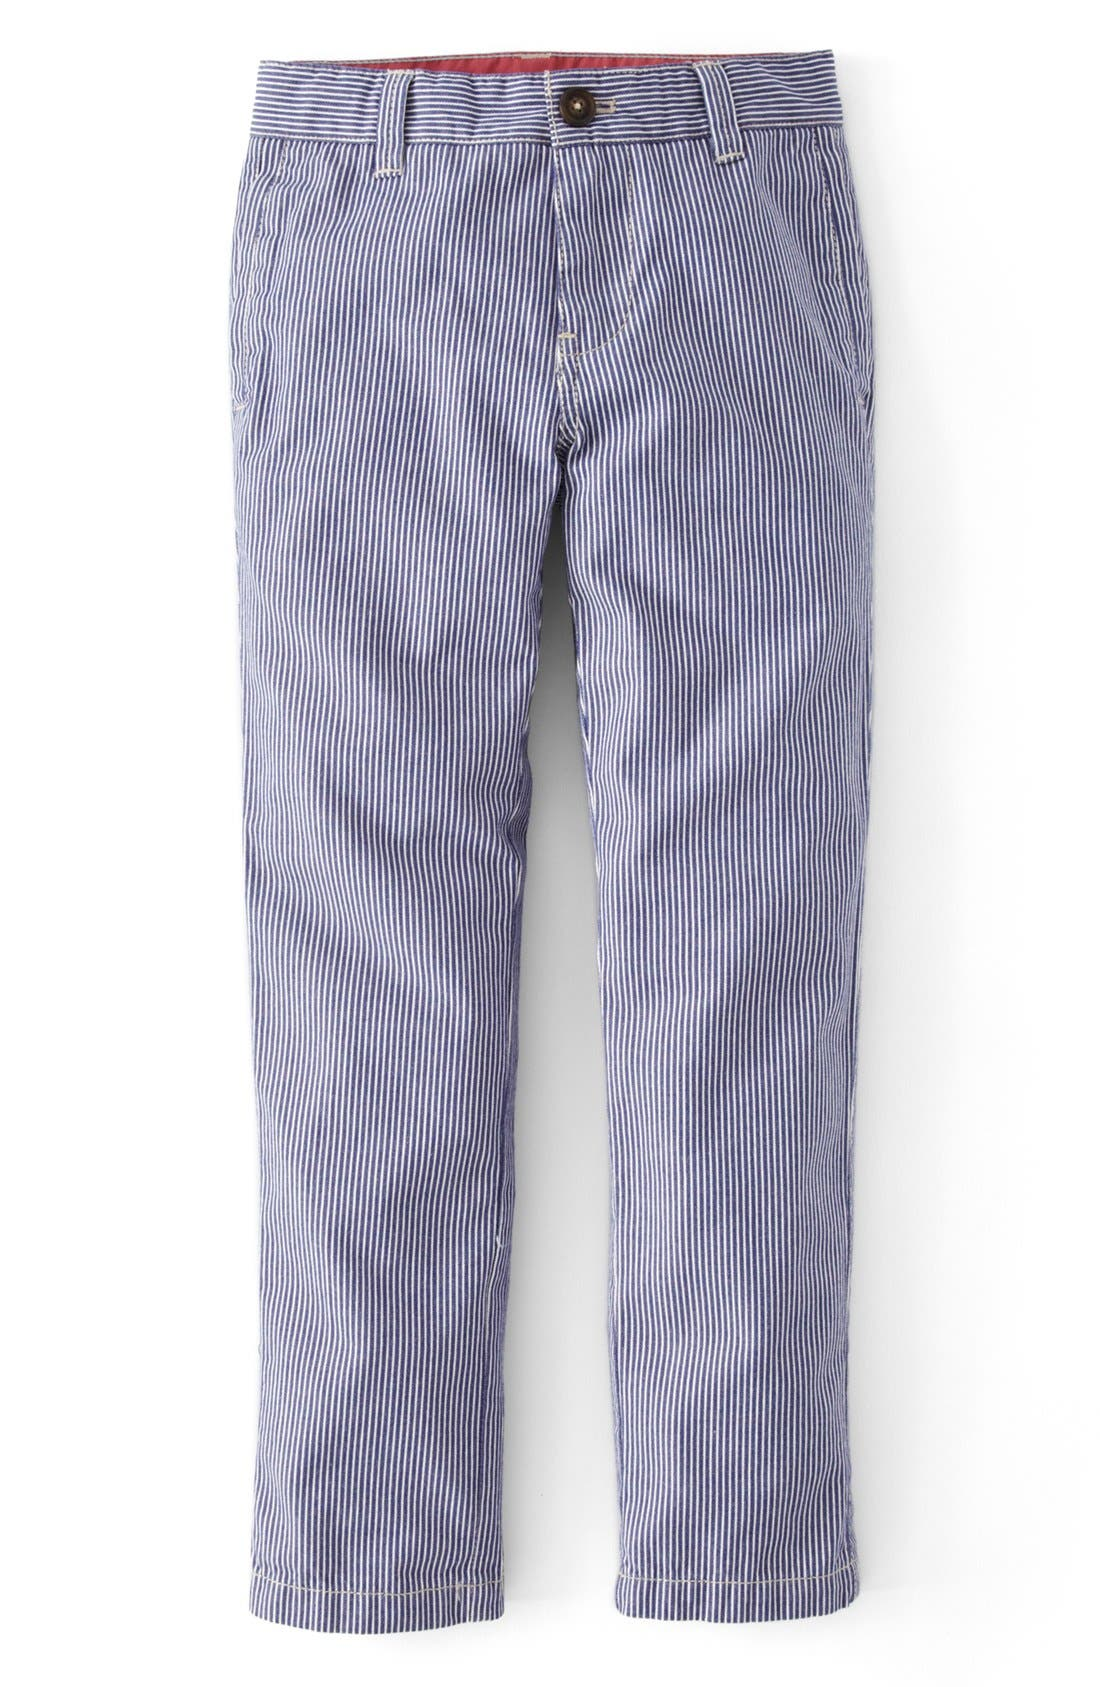 Alternate Image 1 Selected - Mini Boden Chinos (Toddler Boys, Little Boys & Big Boys)